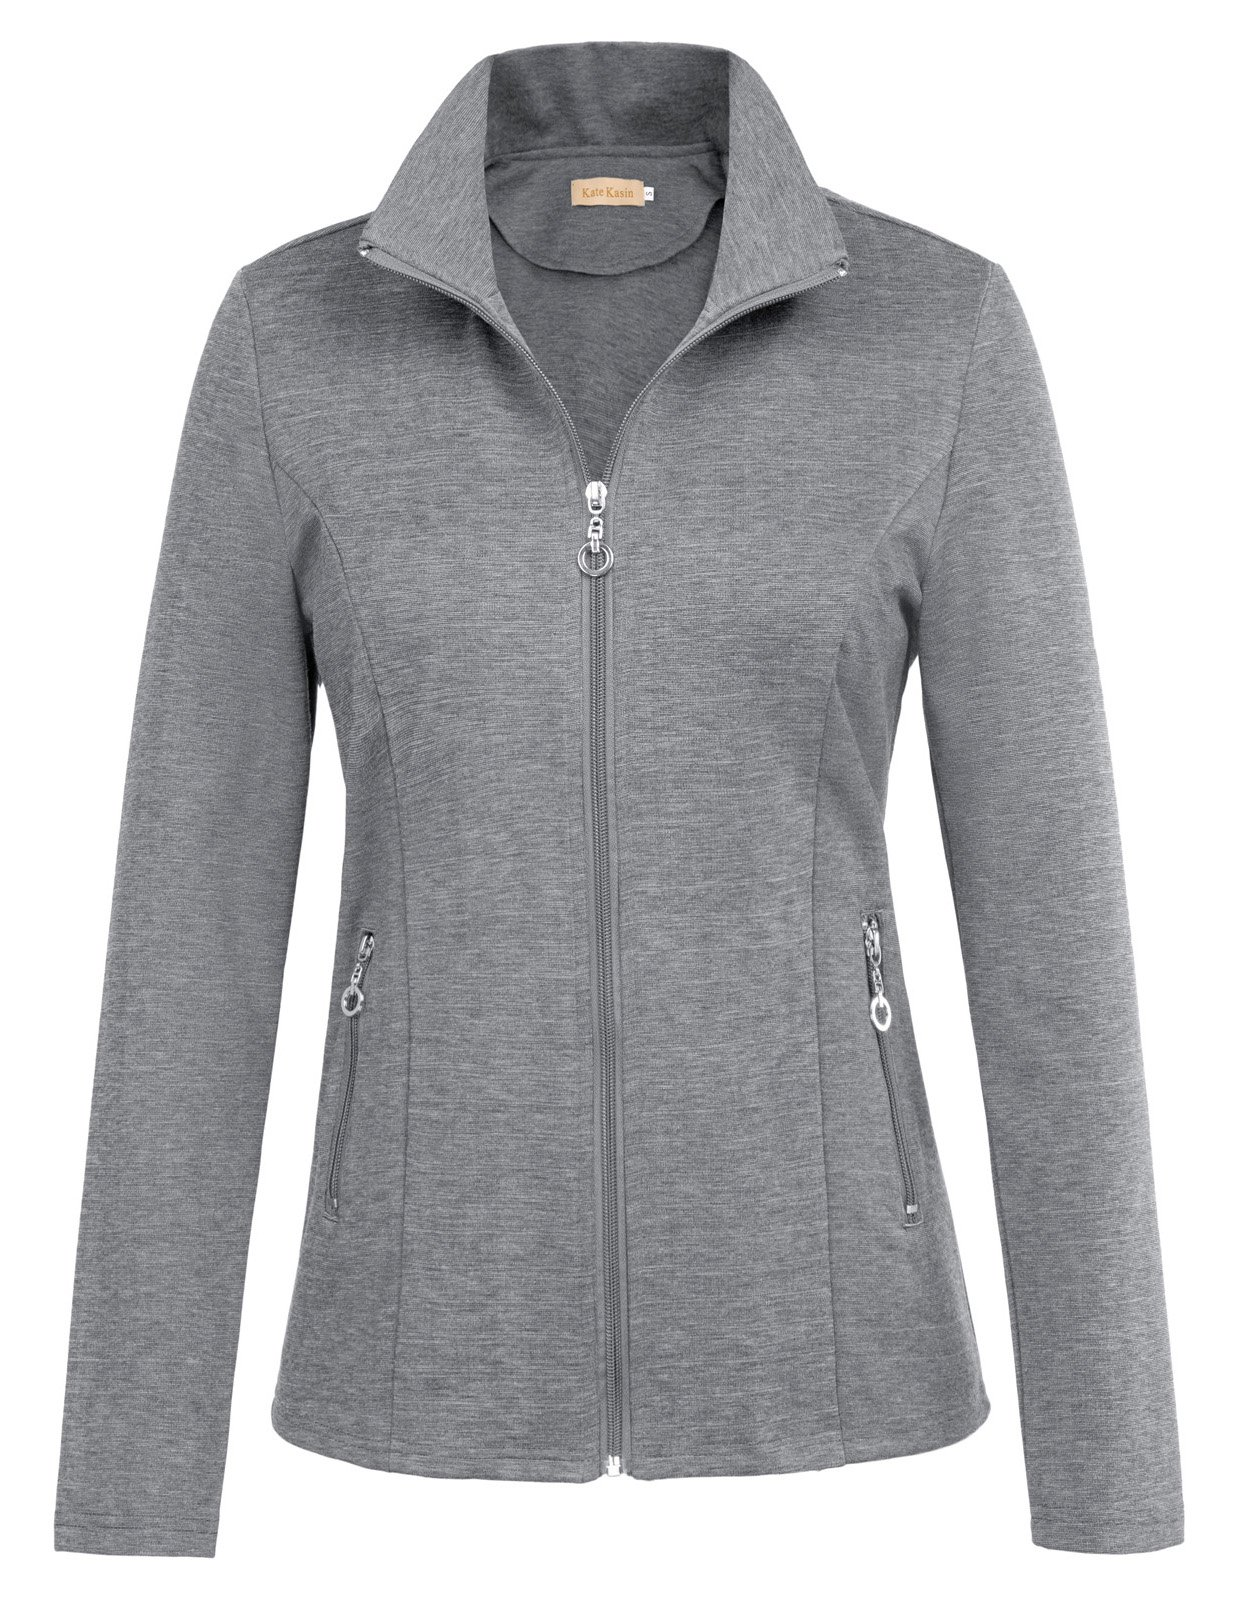 Kate Kasin Sudaderas Para Mujer Plus Size Lightweight Outdoor Active Sports Jackets Coat for Women (2XL,Gray)